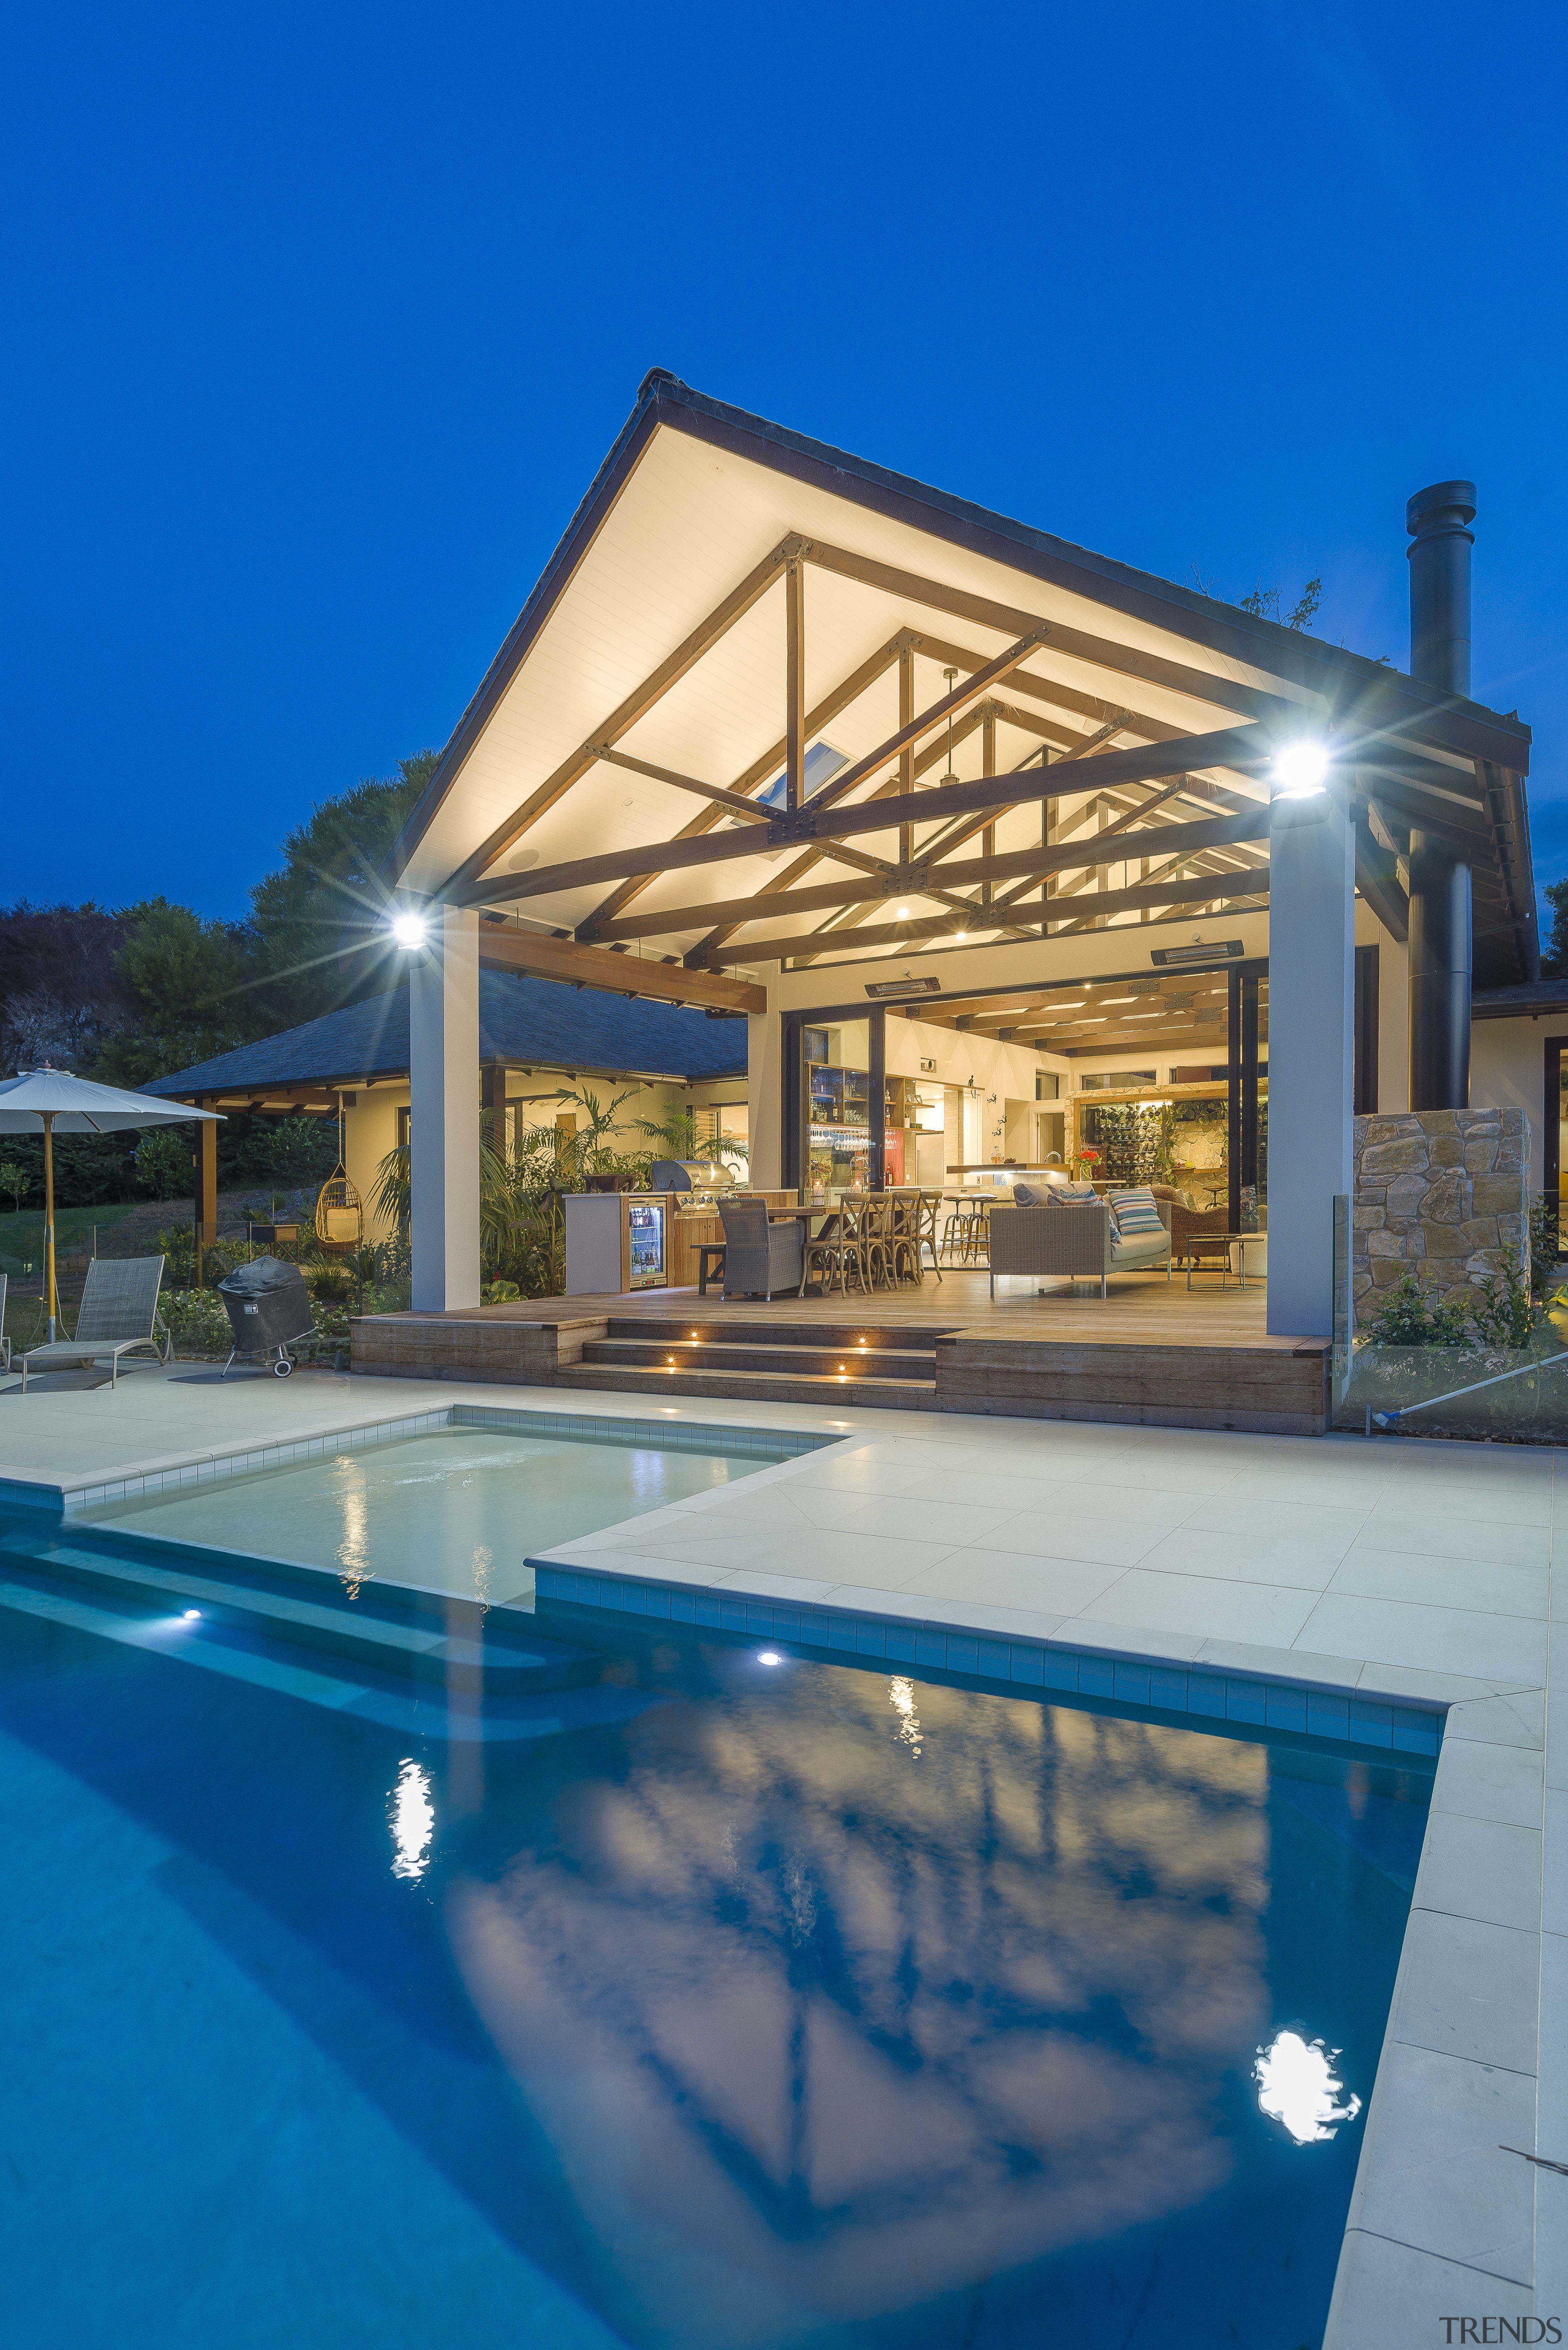 Timber ceiling beams help set the airy, tropical architecture, building, design, estate, home, house, leisure, lighting, patio, property, real estate, resort, roof, shade, swimming pool, villa, blue